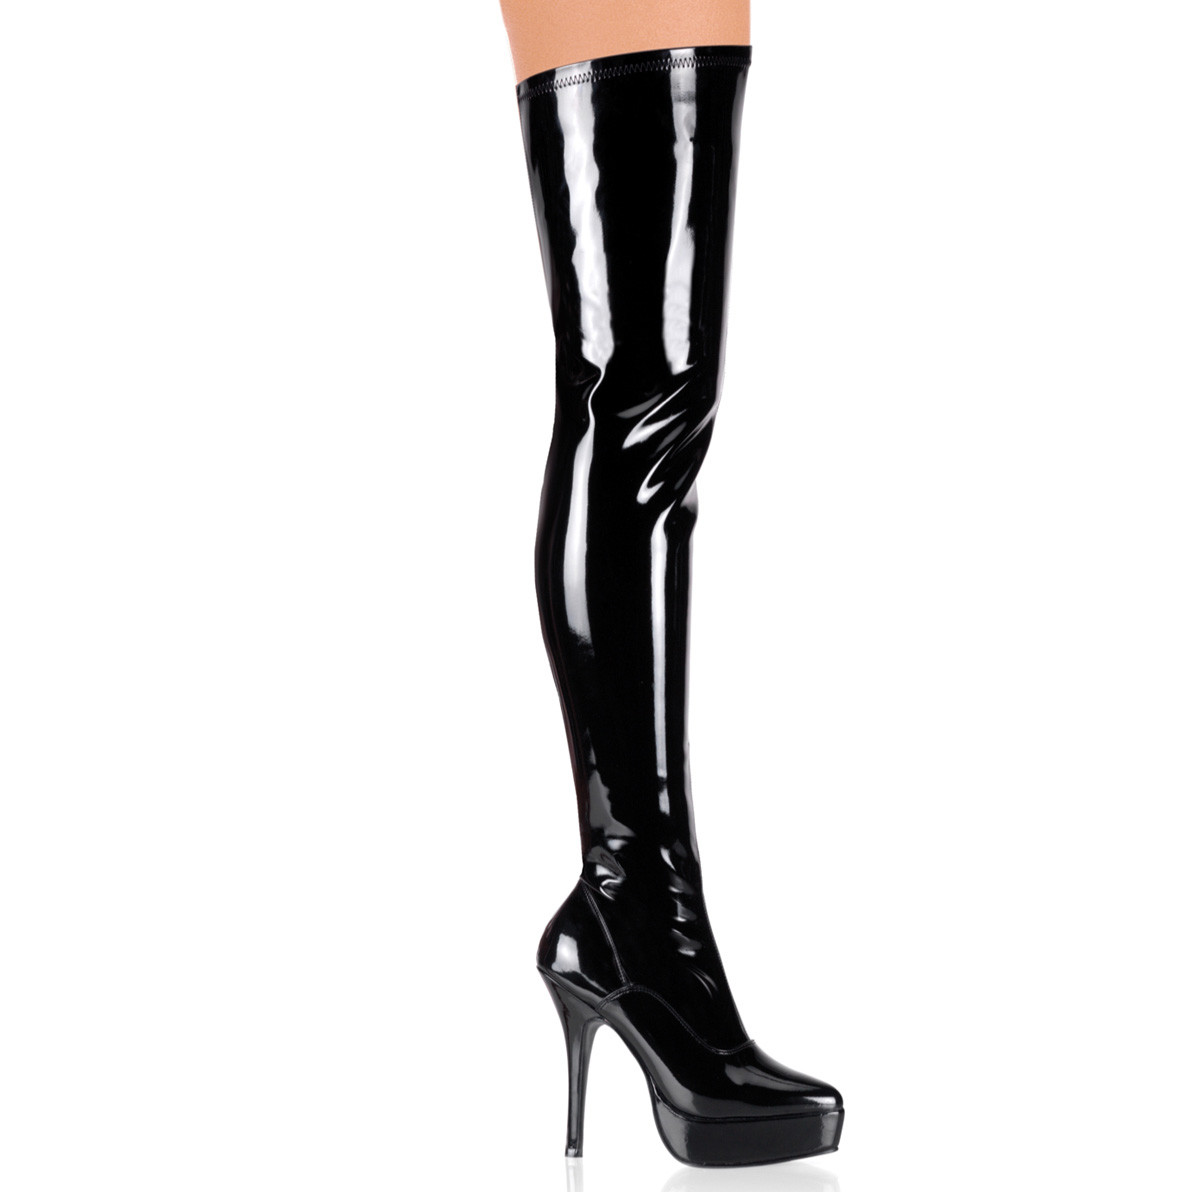 "5 1/4"" Black Stretch Platform Patent Leather Thigh Boot*"